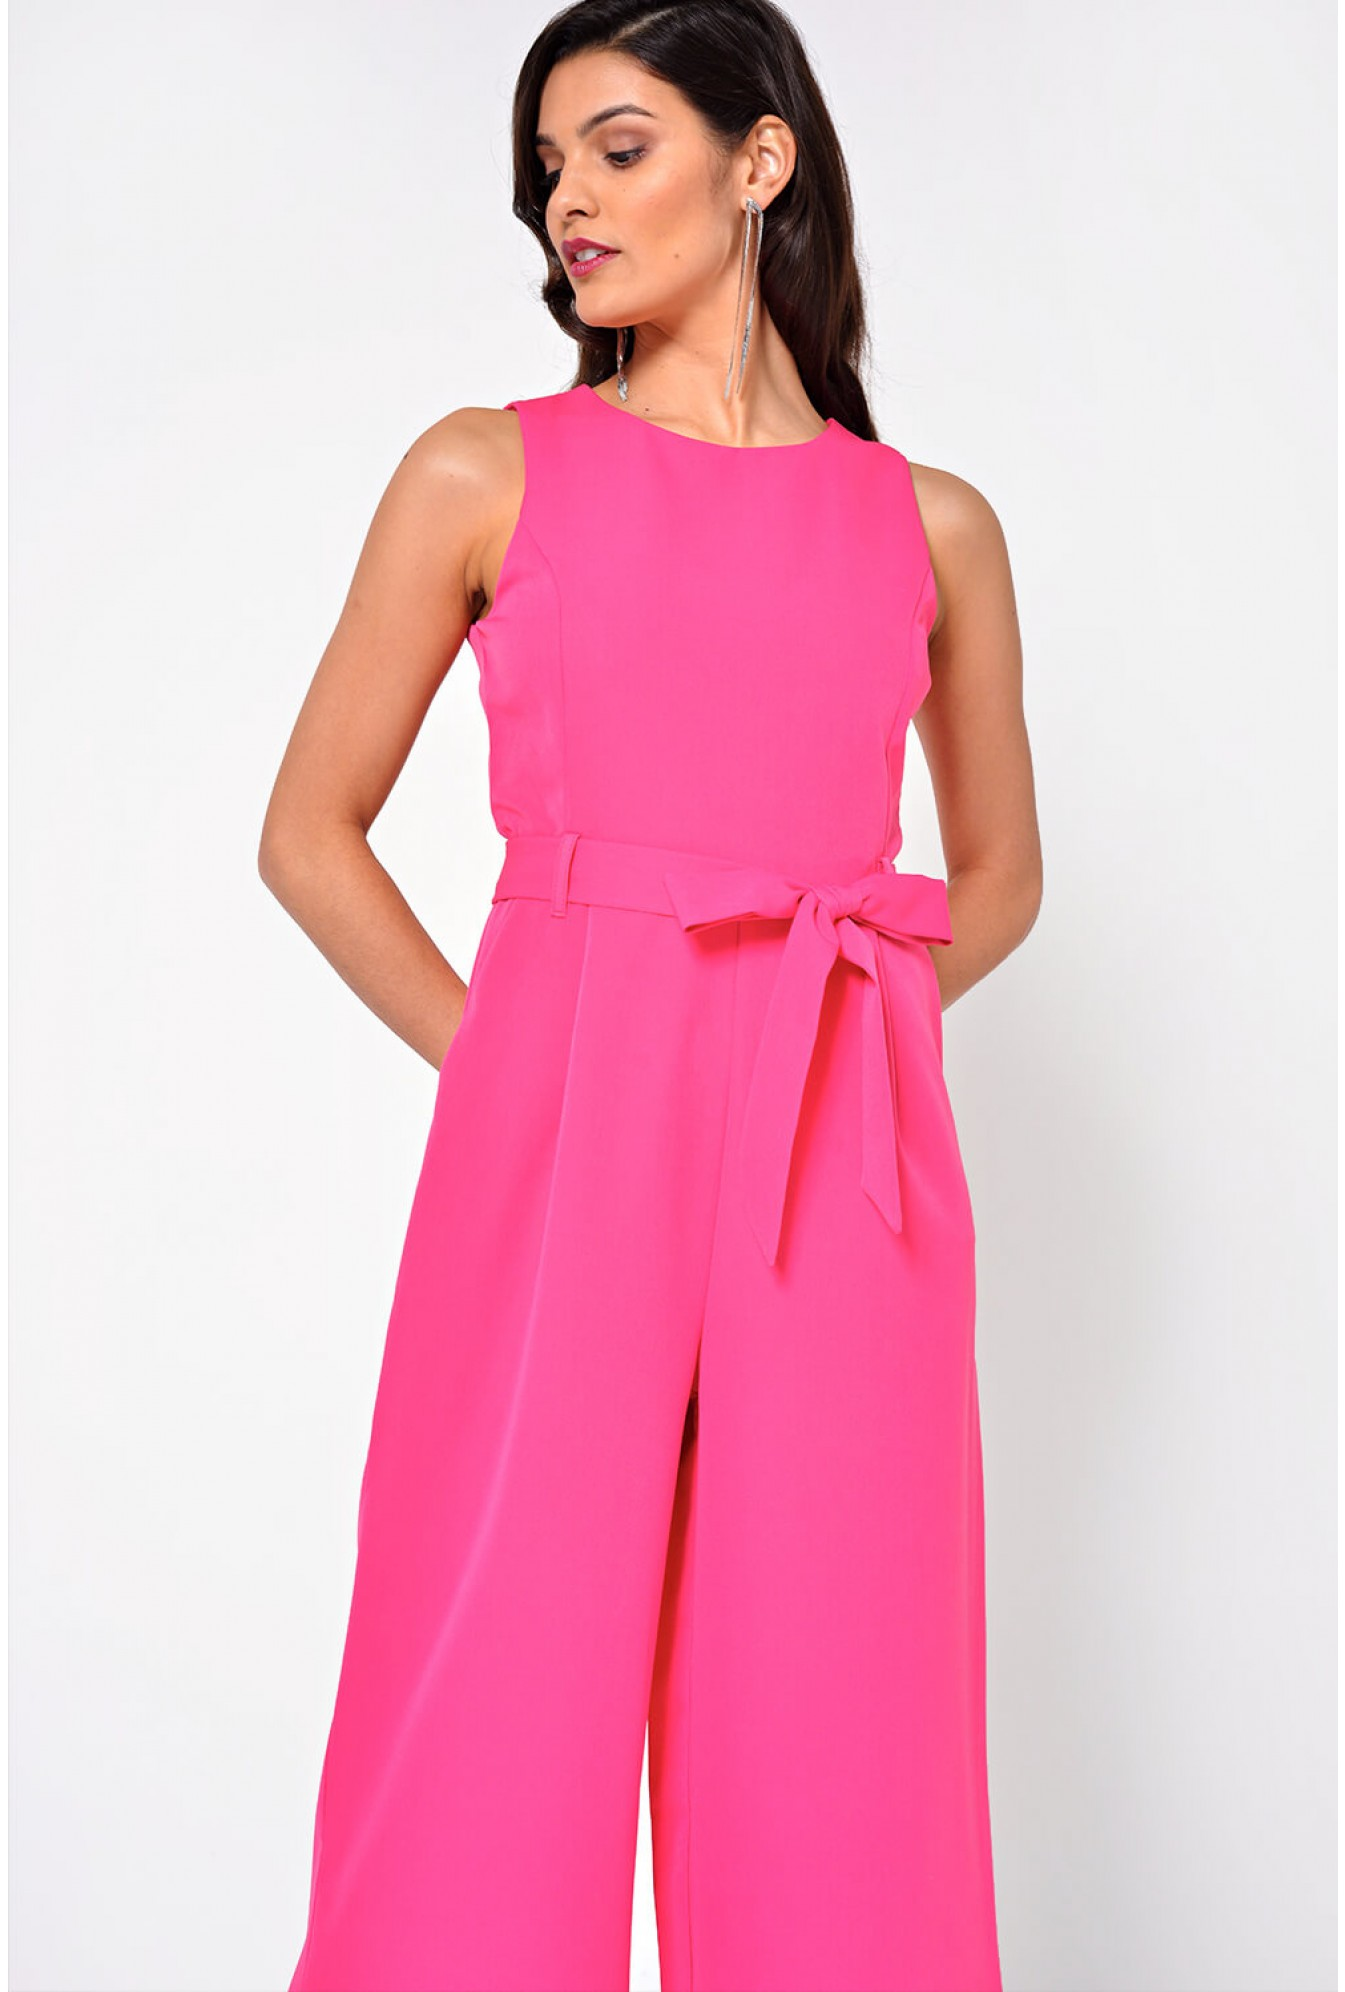 99051bb7c8c2 More Views. Layla Longline Culotte Jumpsuit in Pink. Marc Angelo